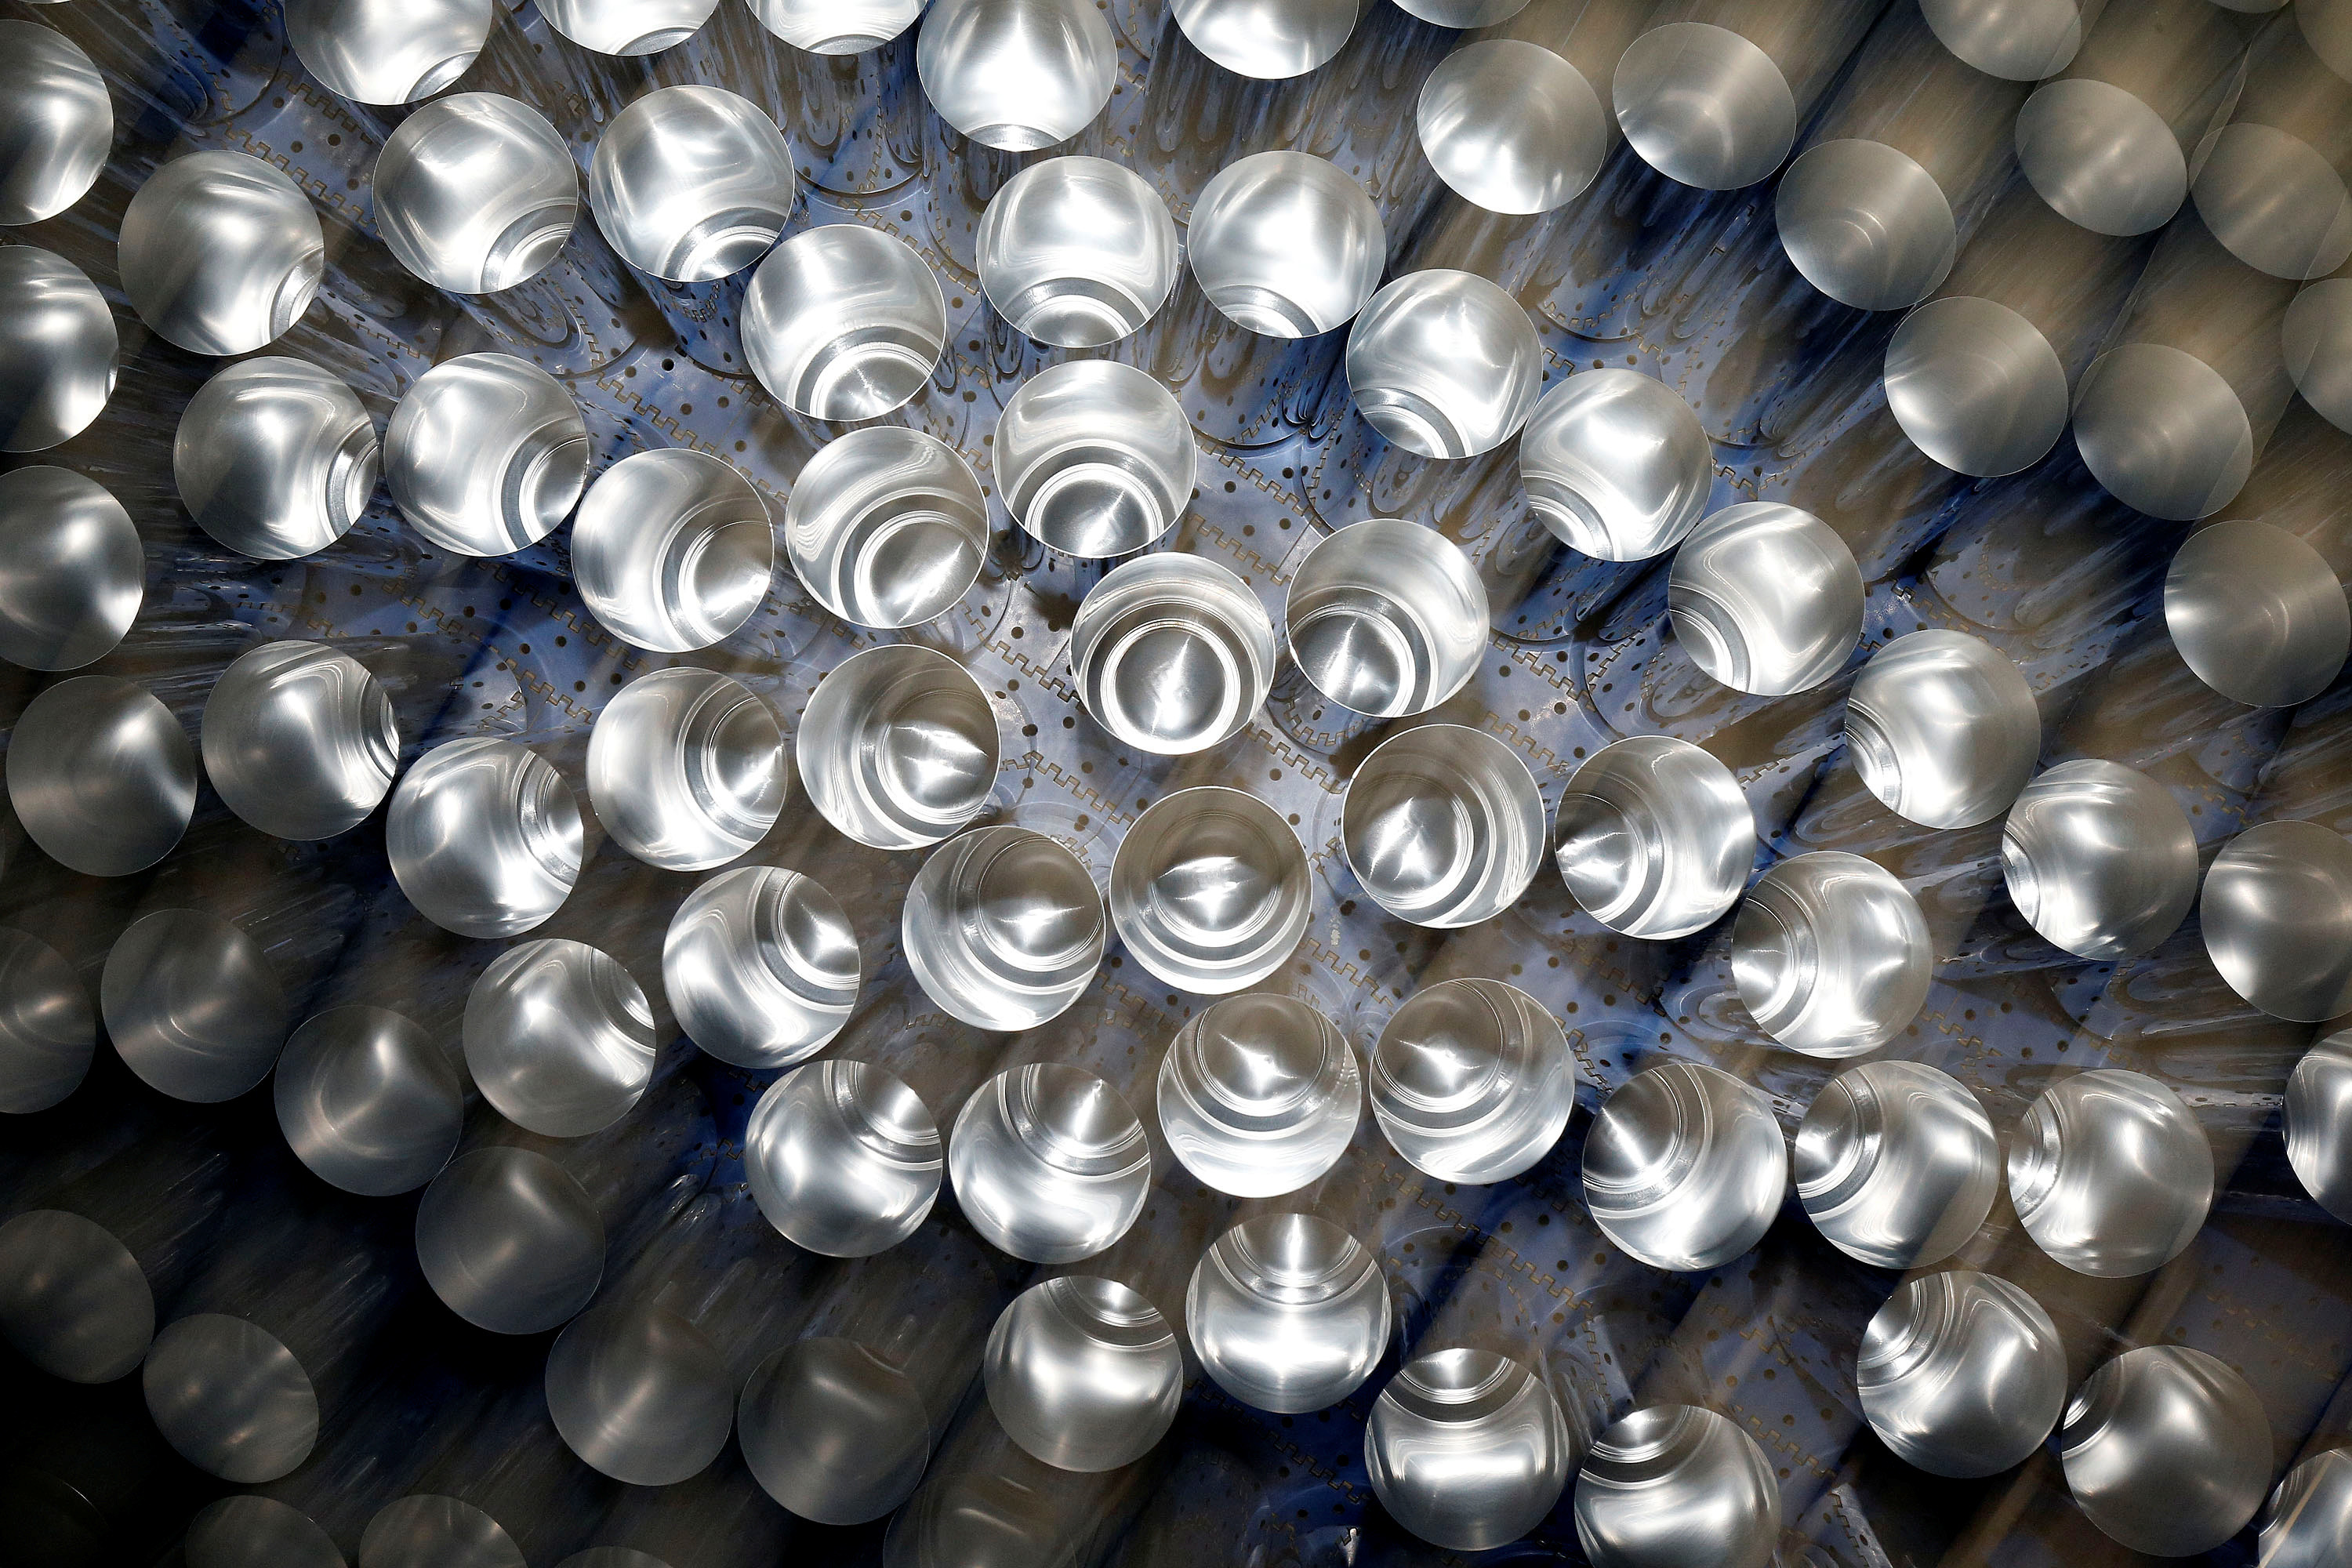 Aluminium cans leave the production line at Ball Corporation, Wakefield, Britain, October 18, 2019. REUTERS/Andrew Yates - RC1390683370